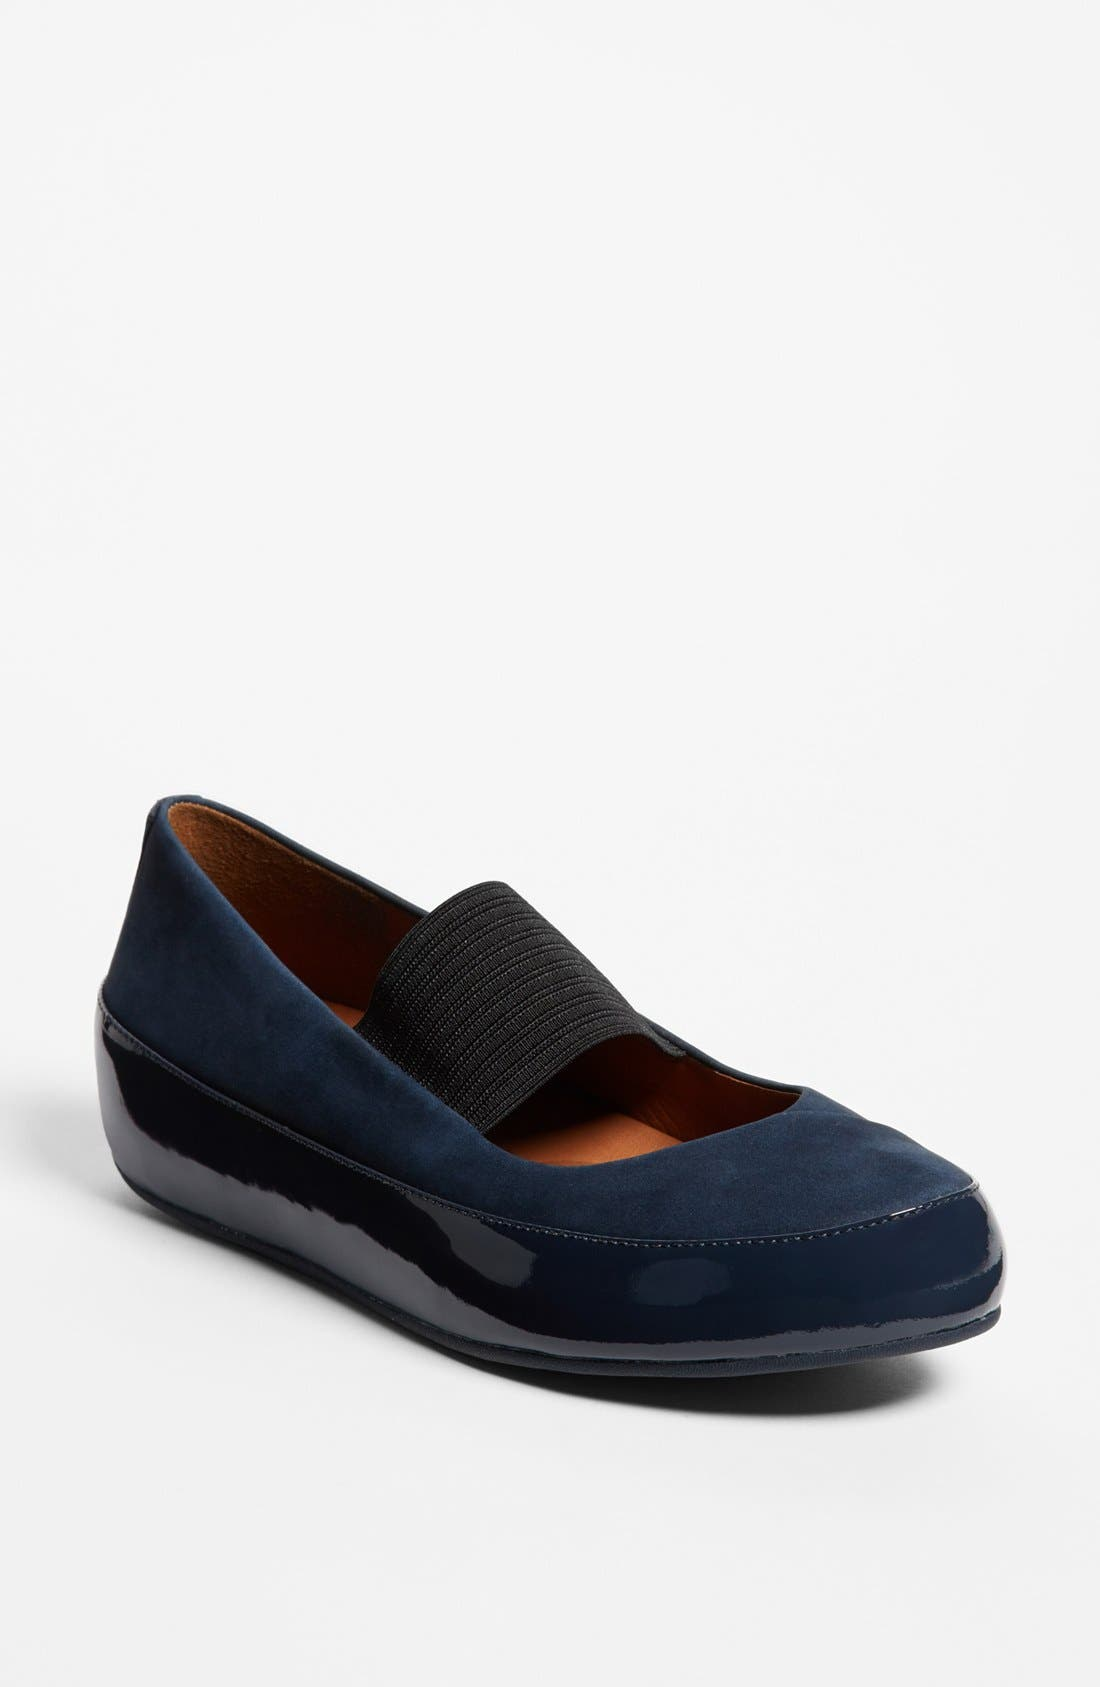 Alternate Image 1 Selected - FitFlop 'Dué™' Mary Jane Flat